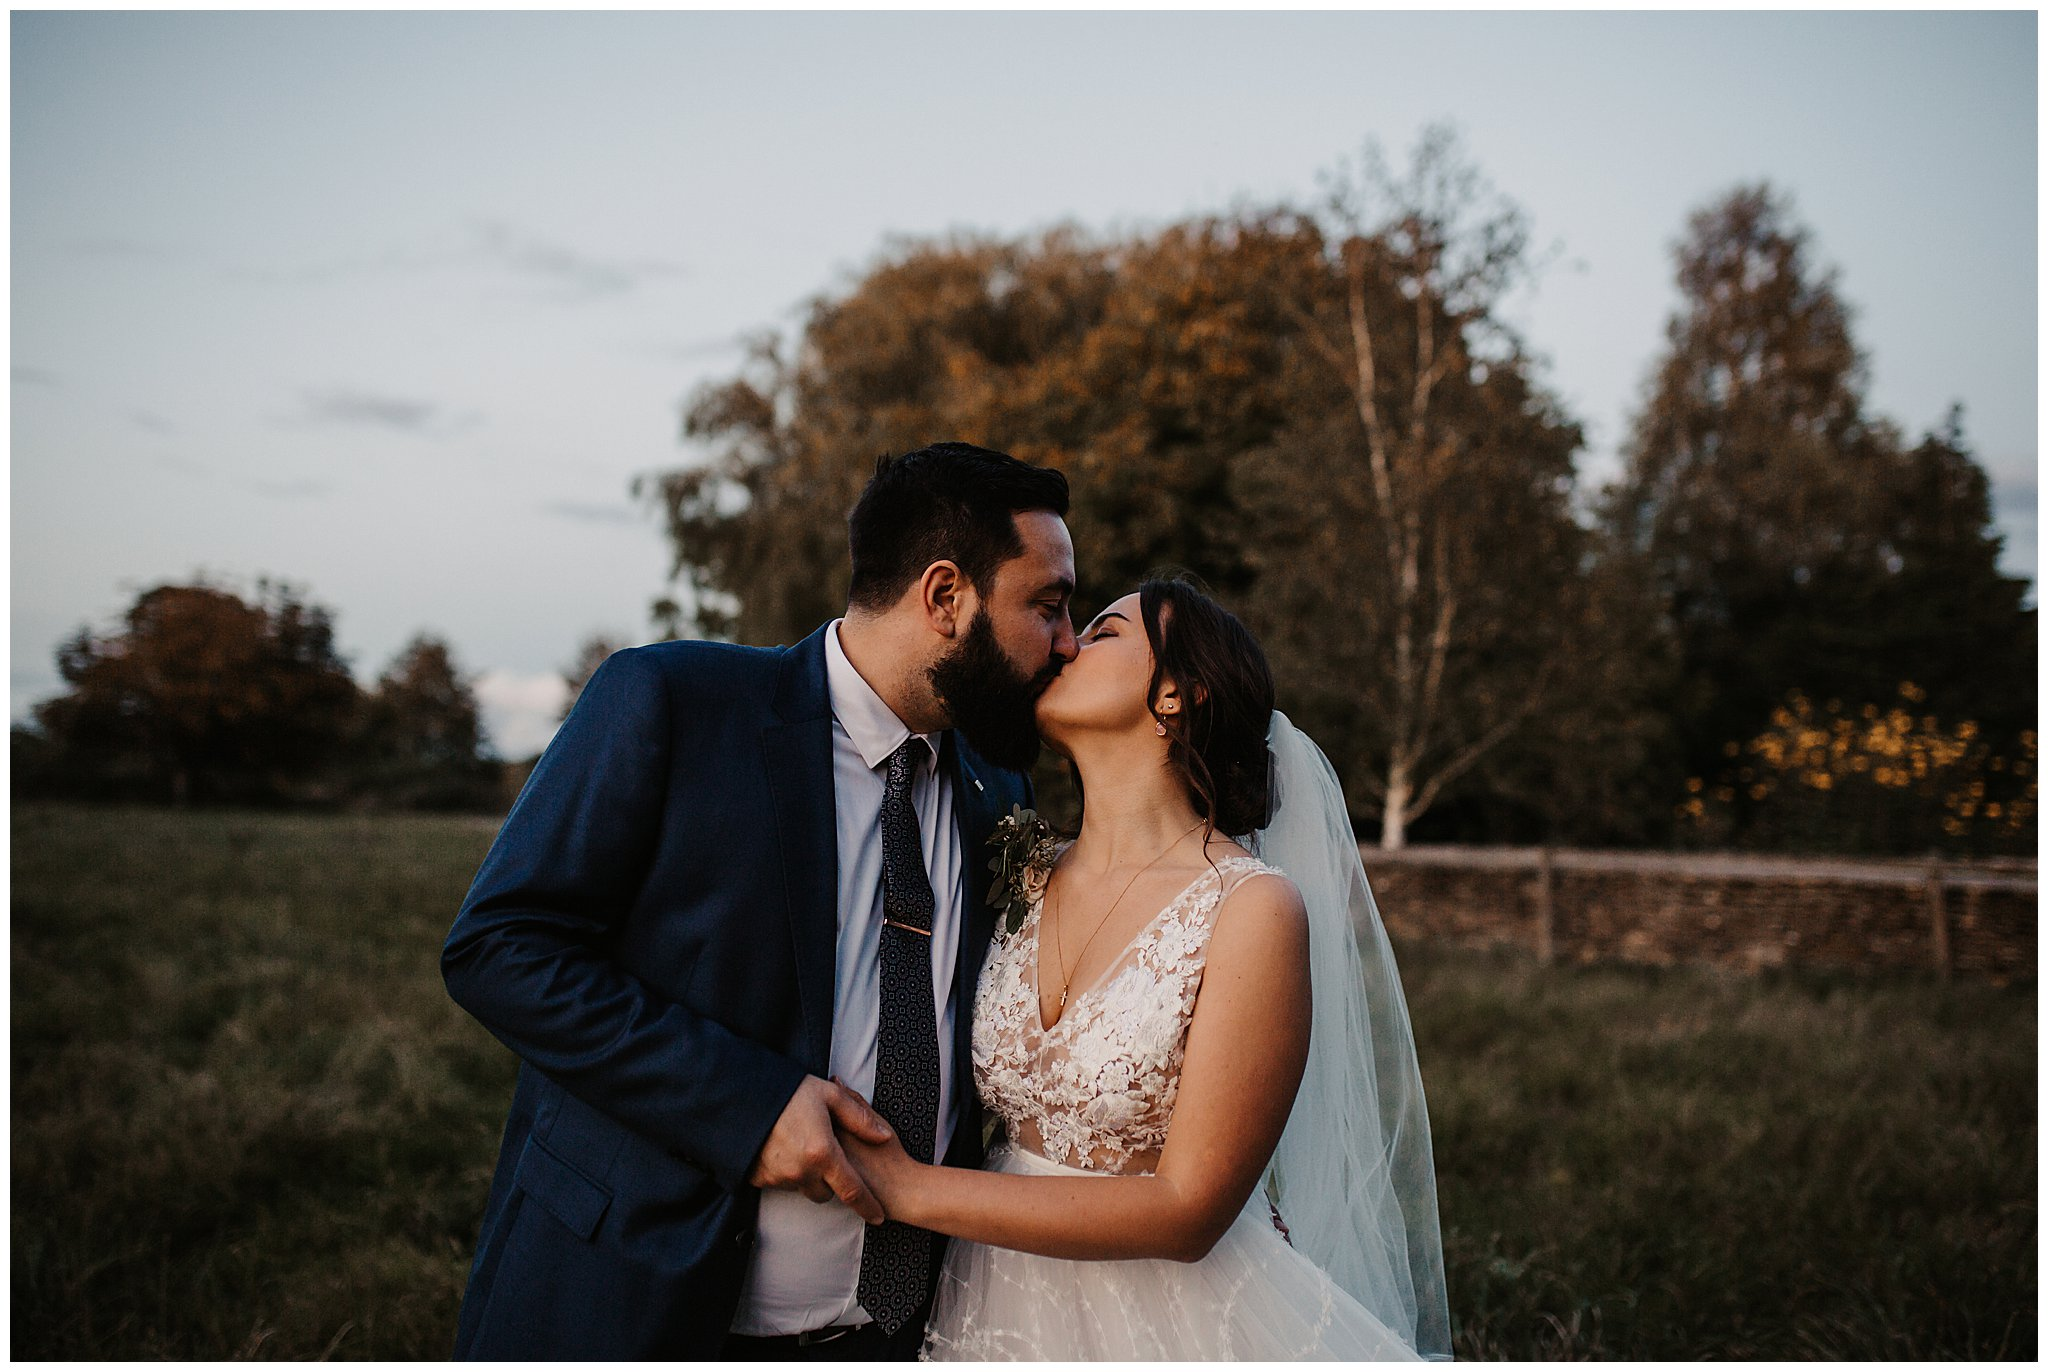 Max & Ksenia Autumnal Wiltshire Wedding-817.jpg